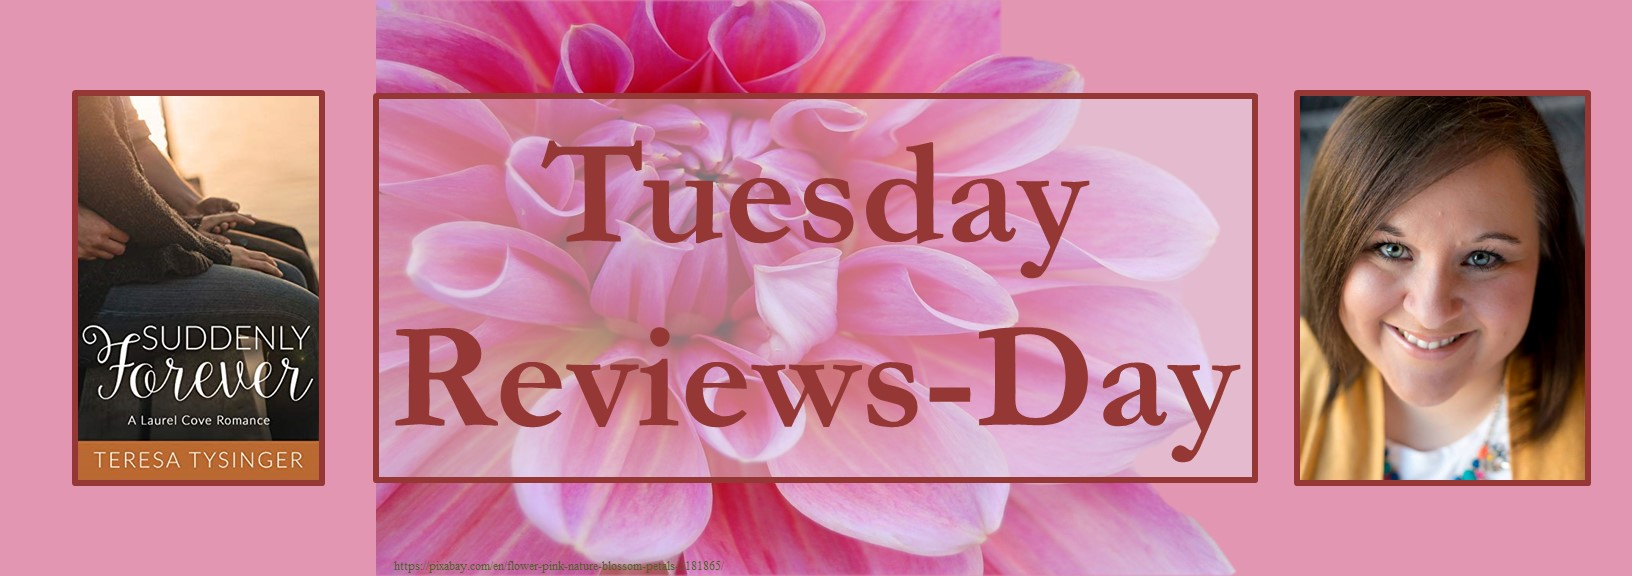 051121 - suddenly forever - tuesday reviews day banner